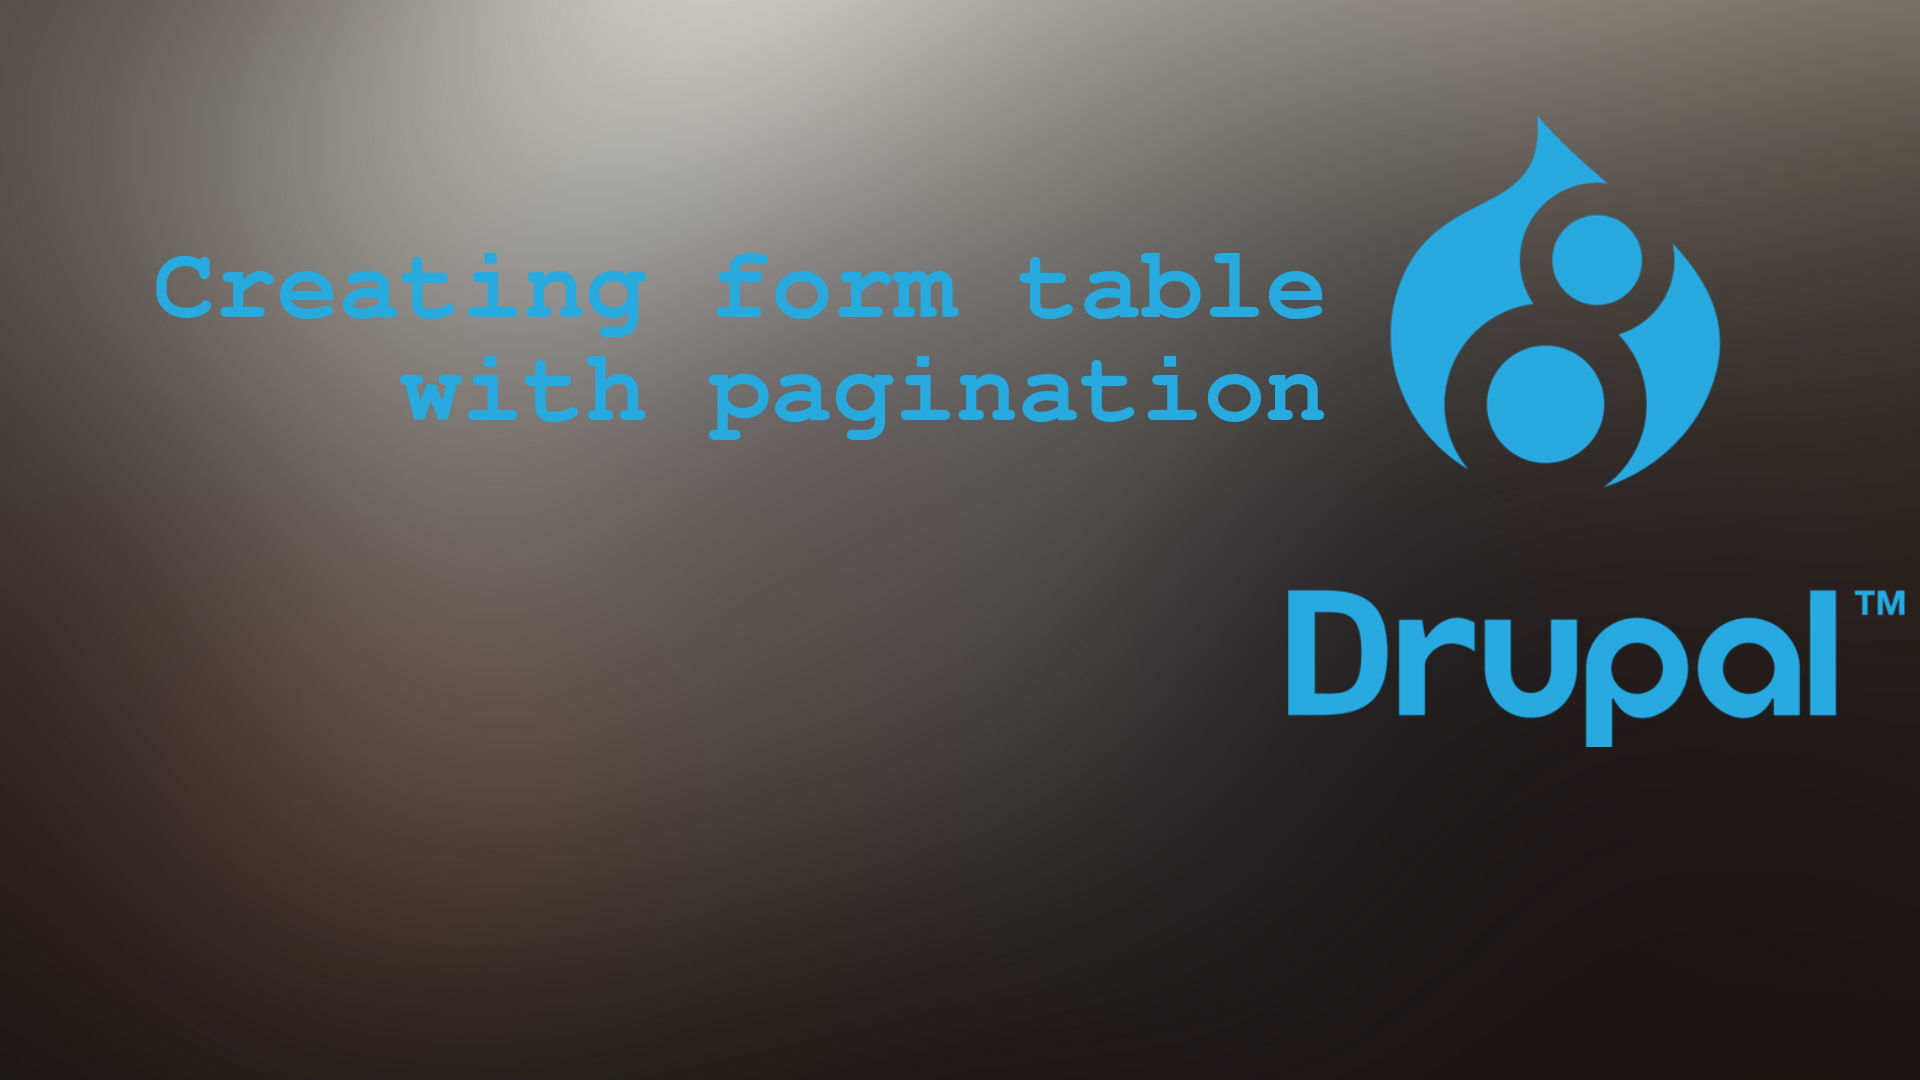 How to Create Form Table with pagination in Drupal 8